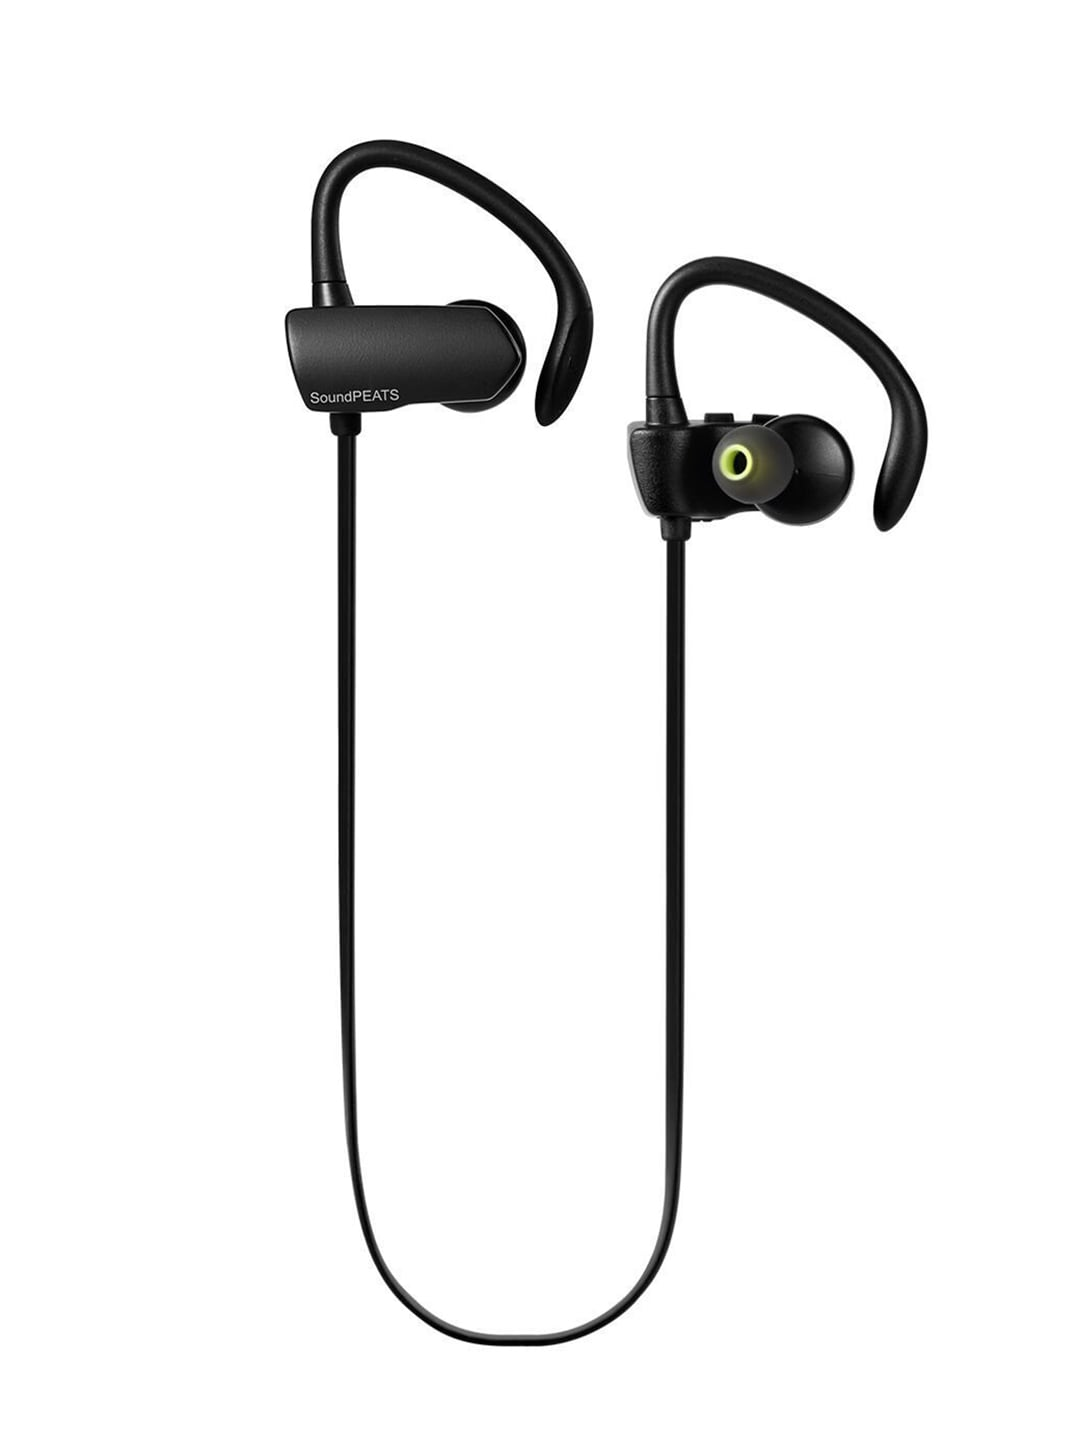 Buy SoundPEATS Q9A Black Wireless Sweat proof Secure Fit Earbuds with Mic At Best Price